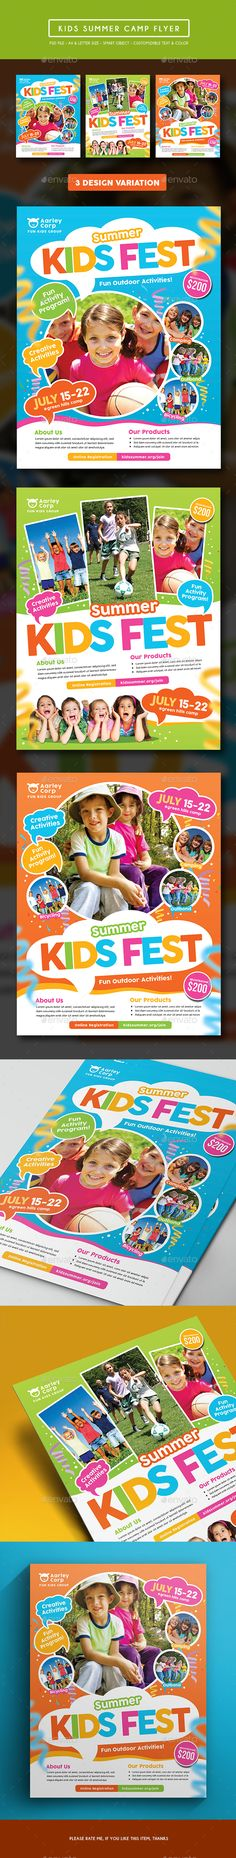 Kids Summer Camp Flyer  - Corporate Flyers.Download here: http://graphicriver.net/item/kids-summer-camp-flyer-/15249803?ref=arroganttype